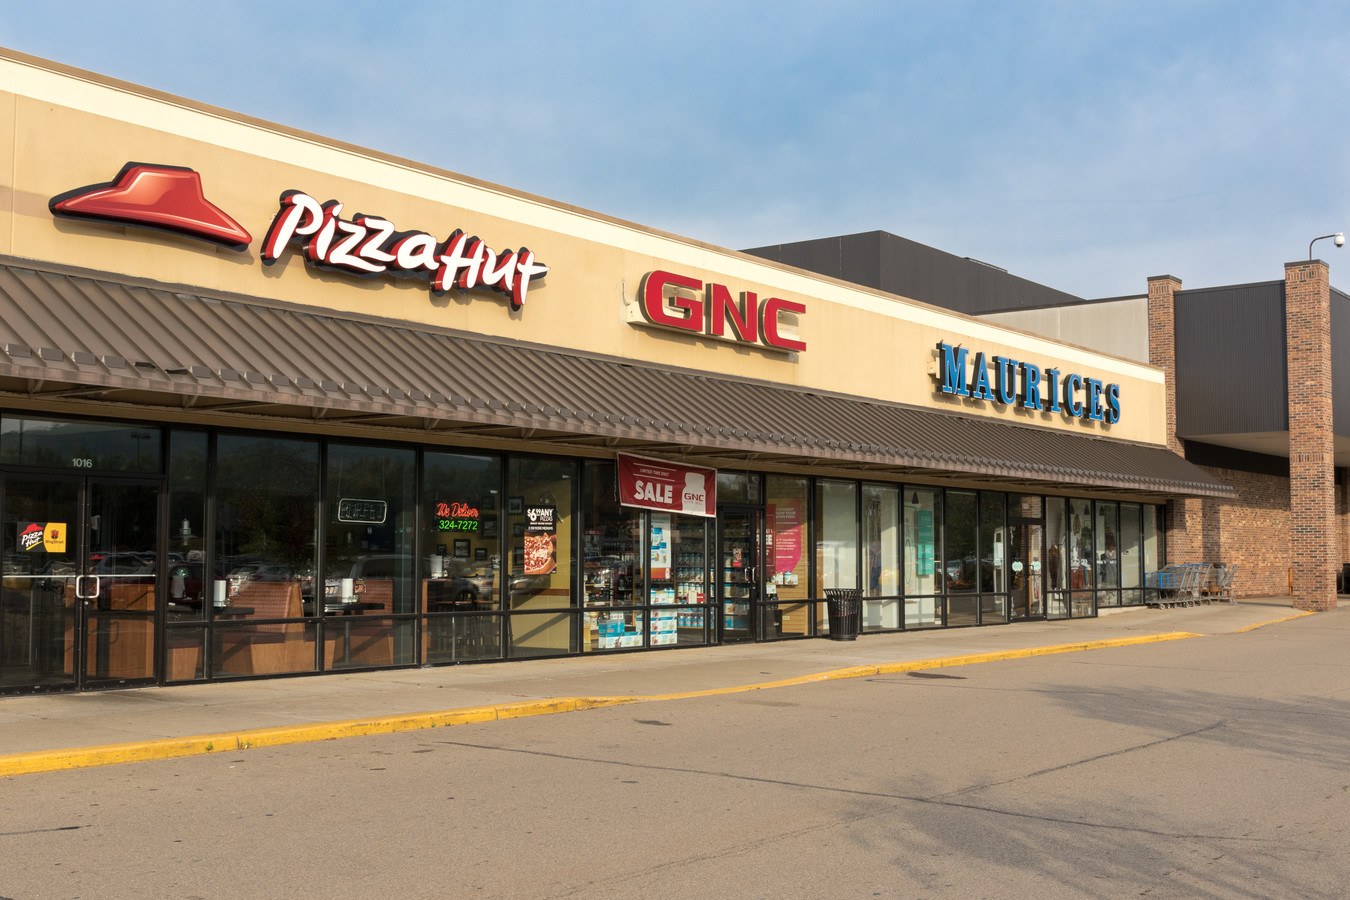 Pizza Hut and GNC